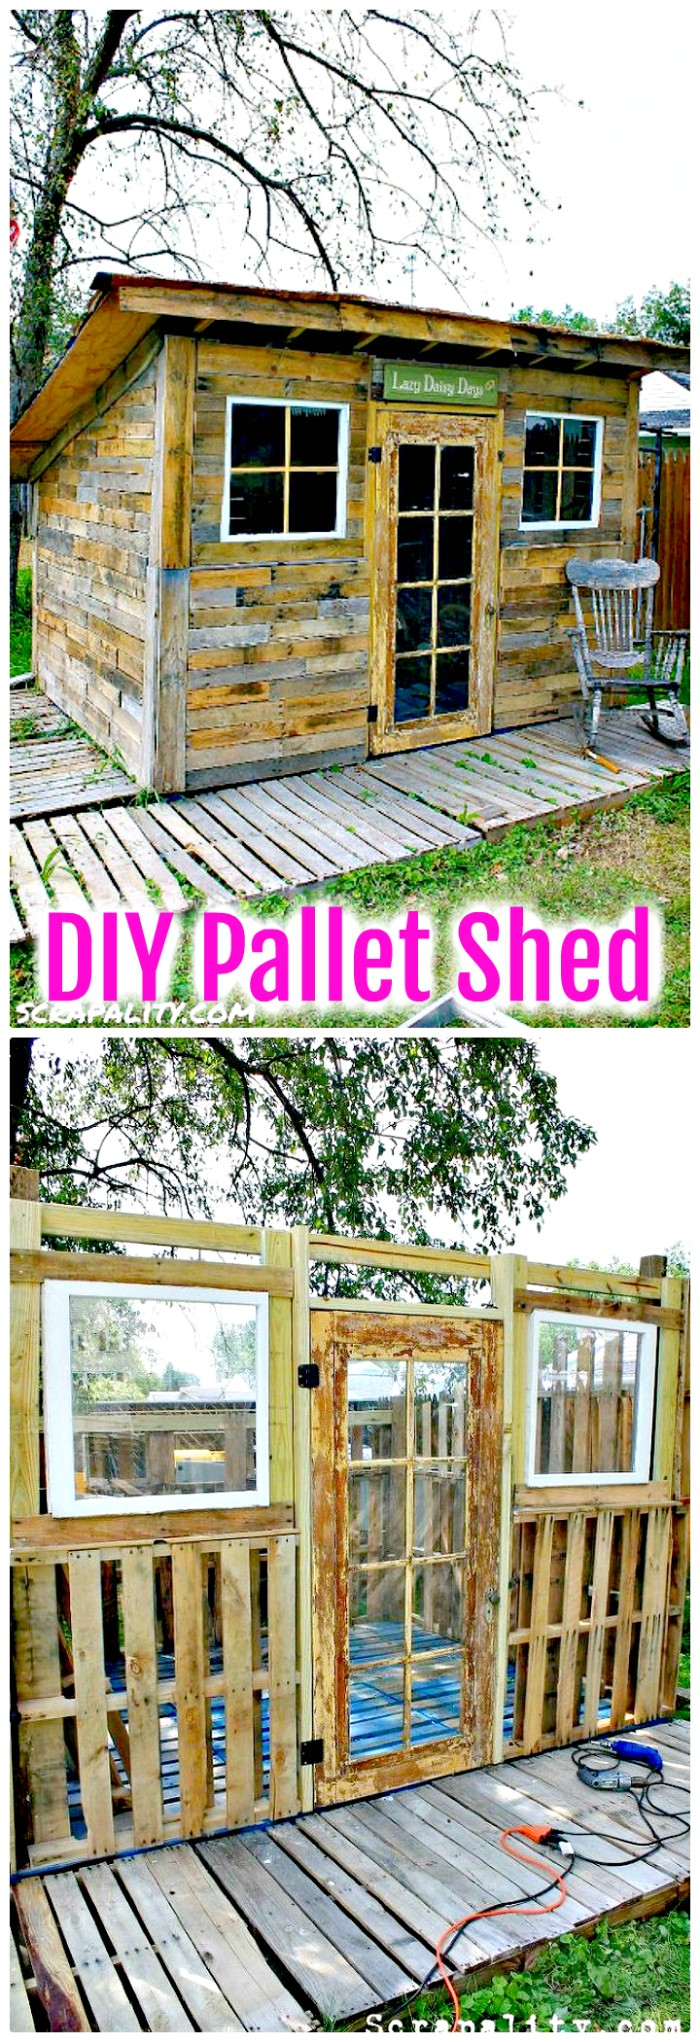 DIY Pallet Shed 30 Cheap And Easy DIY Shed Plans